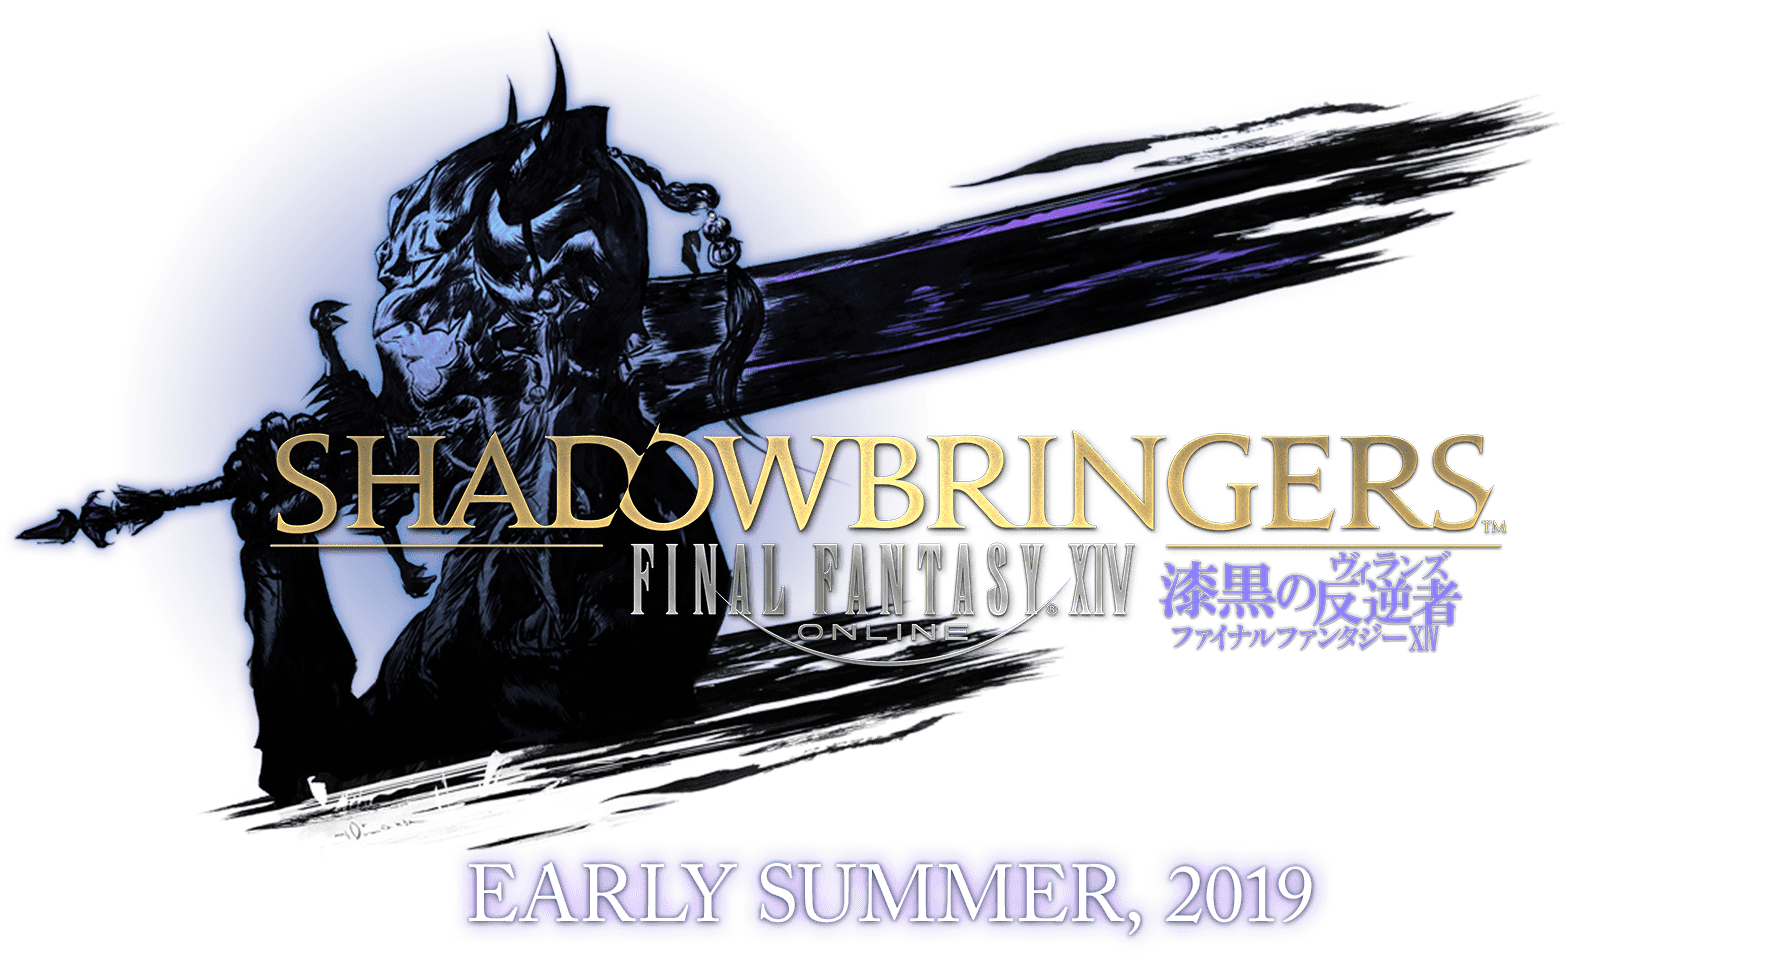 SHADOWBRINGERS 漆黒のヴィランズ EARLY SUMMER, 2019